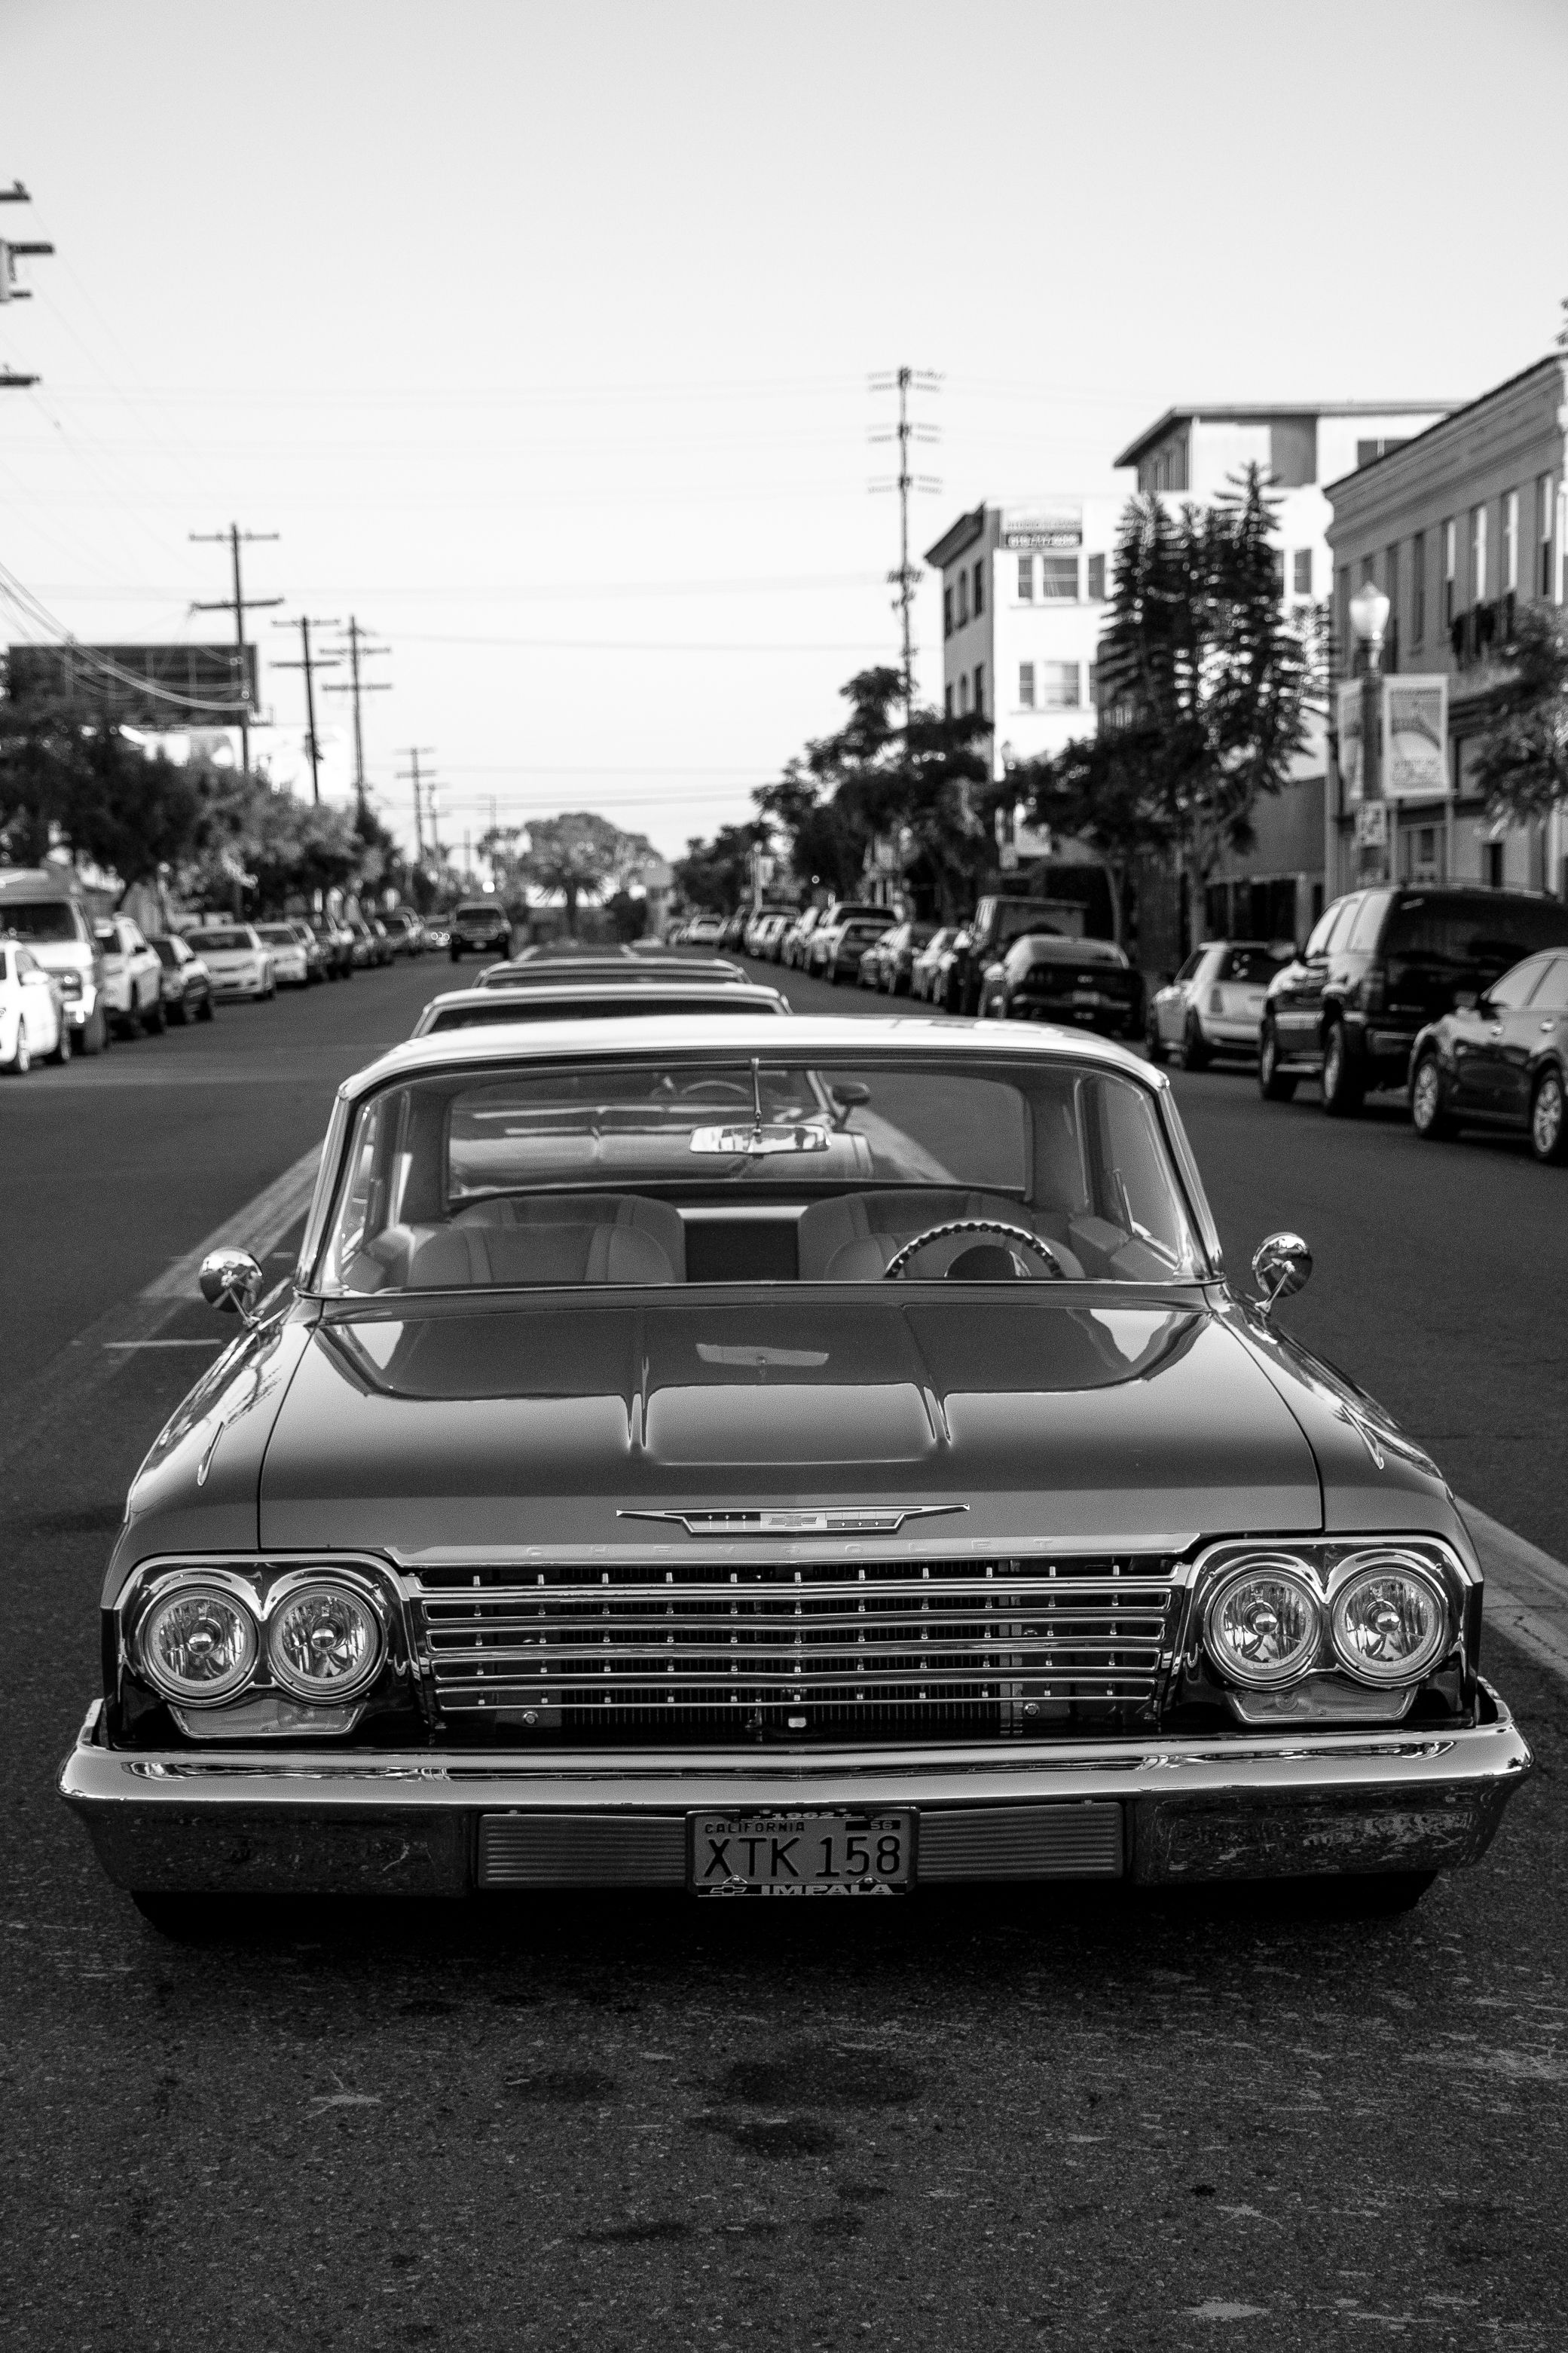 Peep Me Out Ig Chromatic619 Street Photography About The Ghettos In San Diego Theothersideofsandiego Street Photography Urban Photography Logan Heights